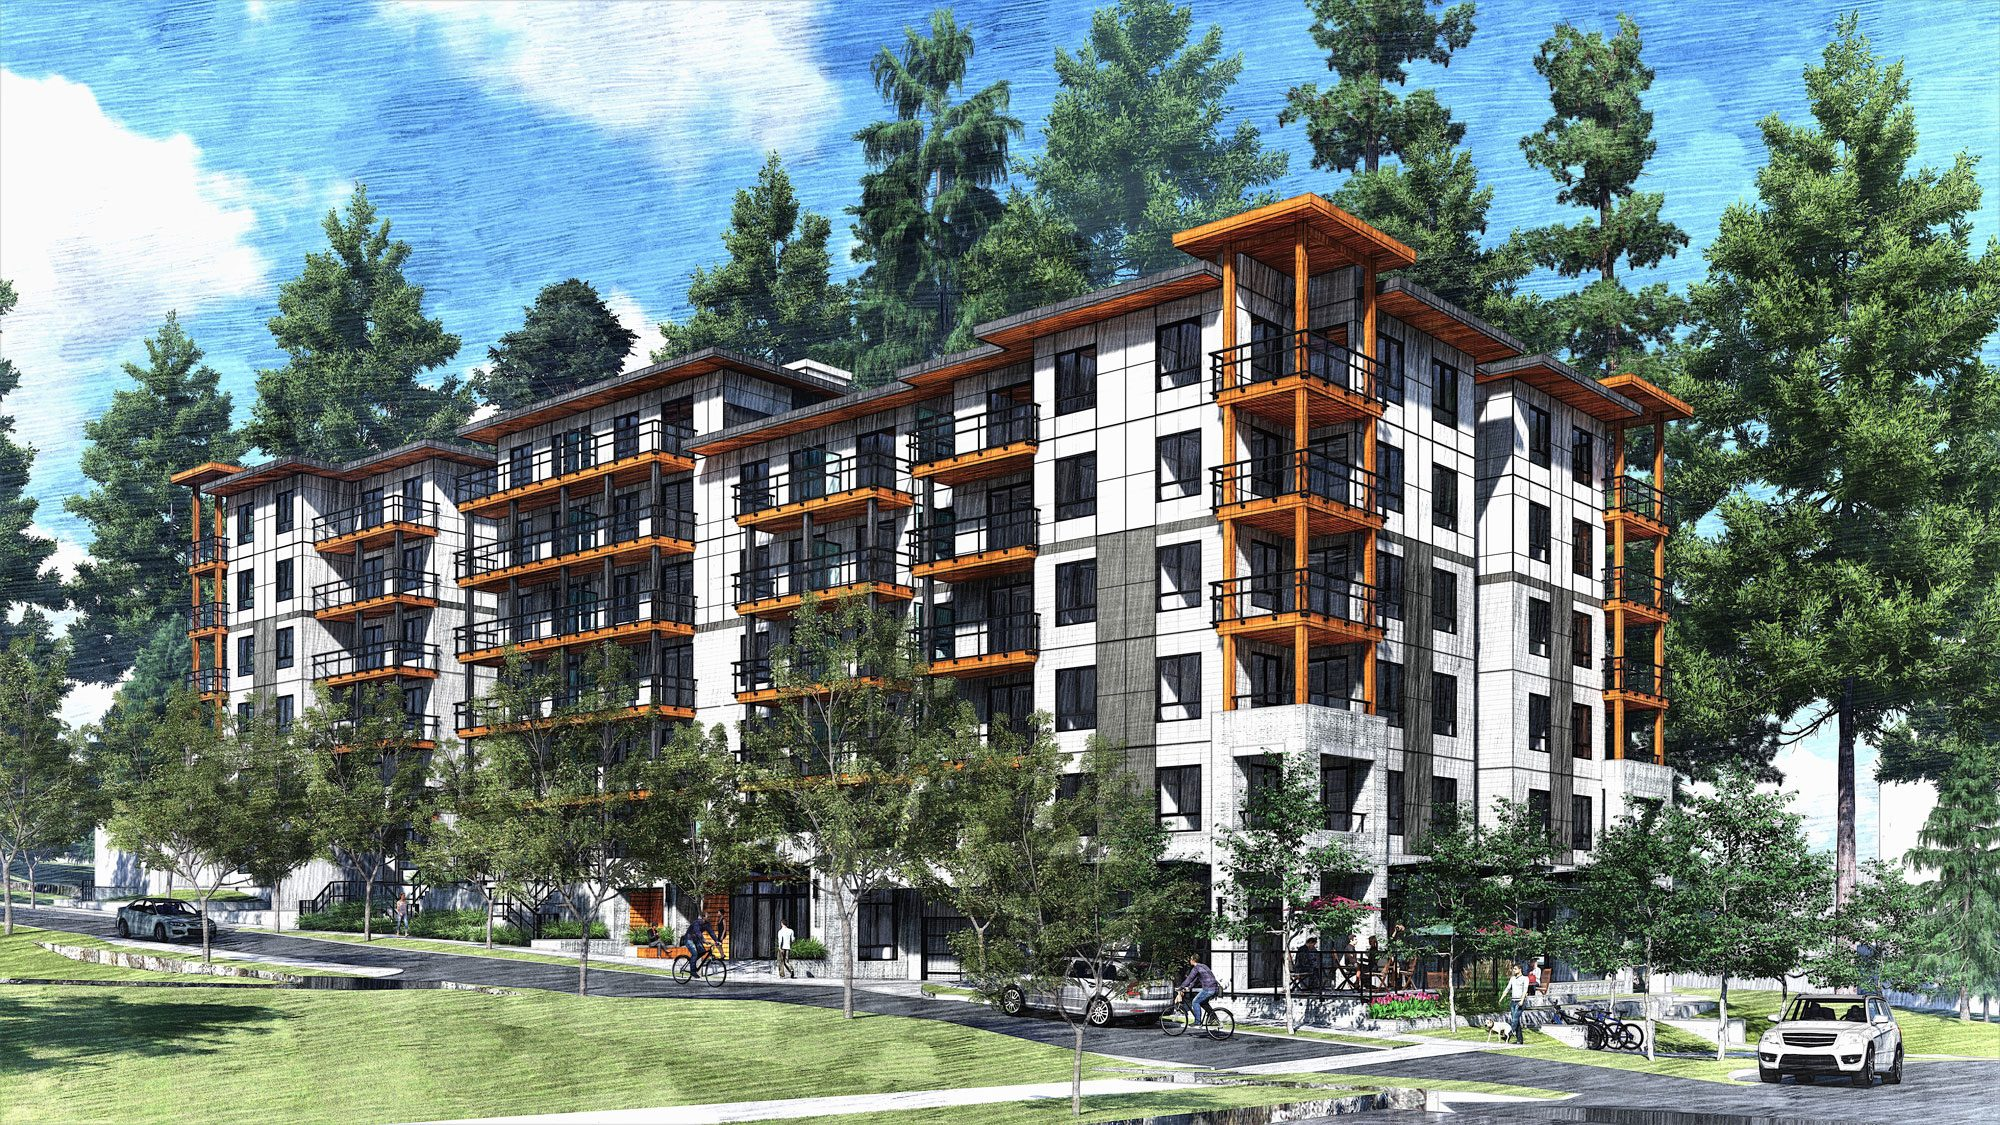 Rent-to-own plan offered at proposed North Vancouver development